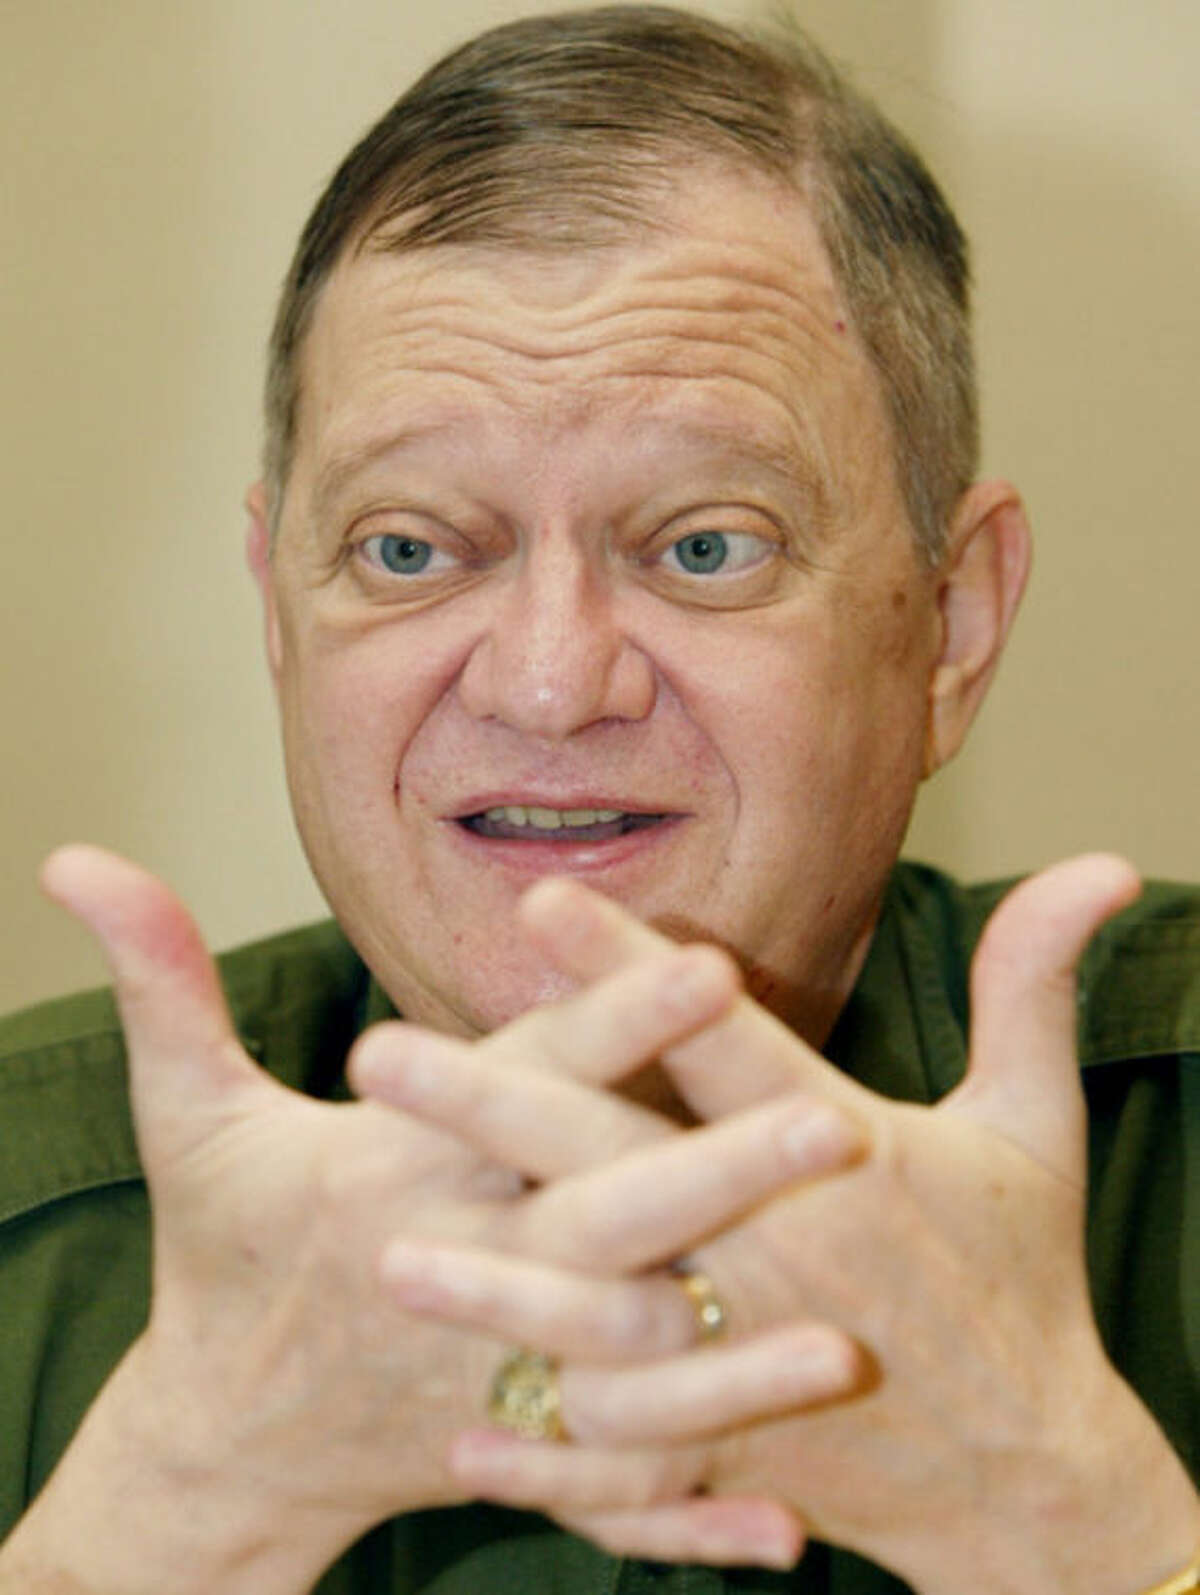 FILE - This May 24, 2004 file photo, Author Tom Clancy gestures during an interview in New York. Clancy, the bestselling author of